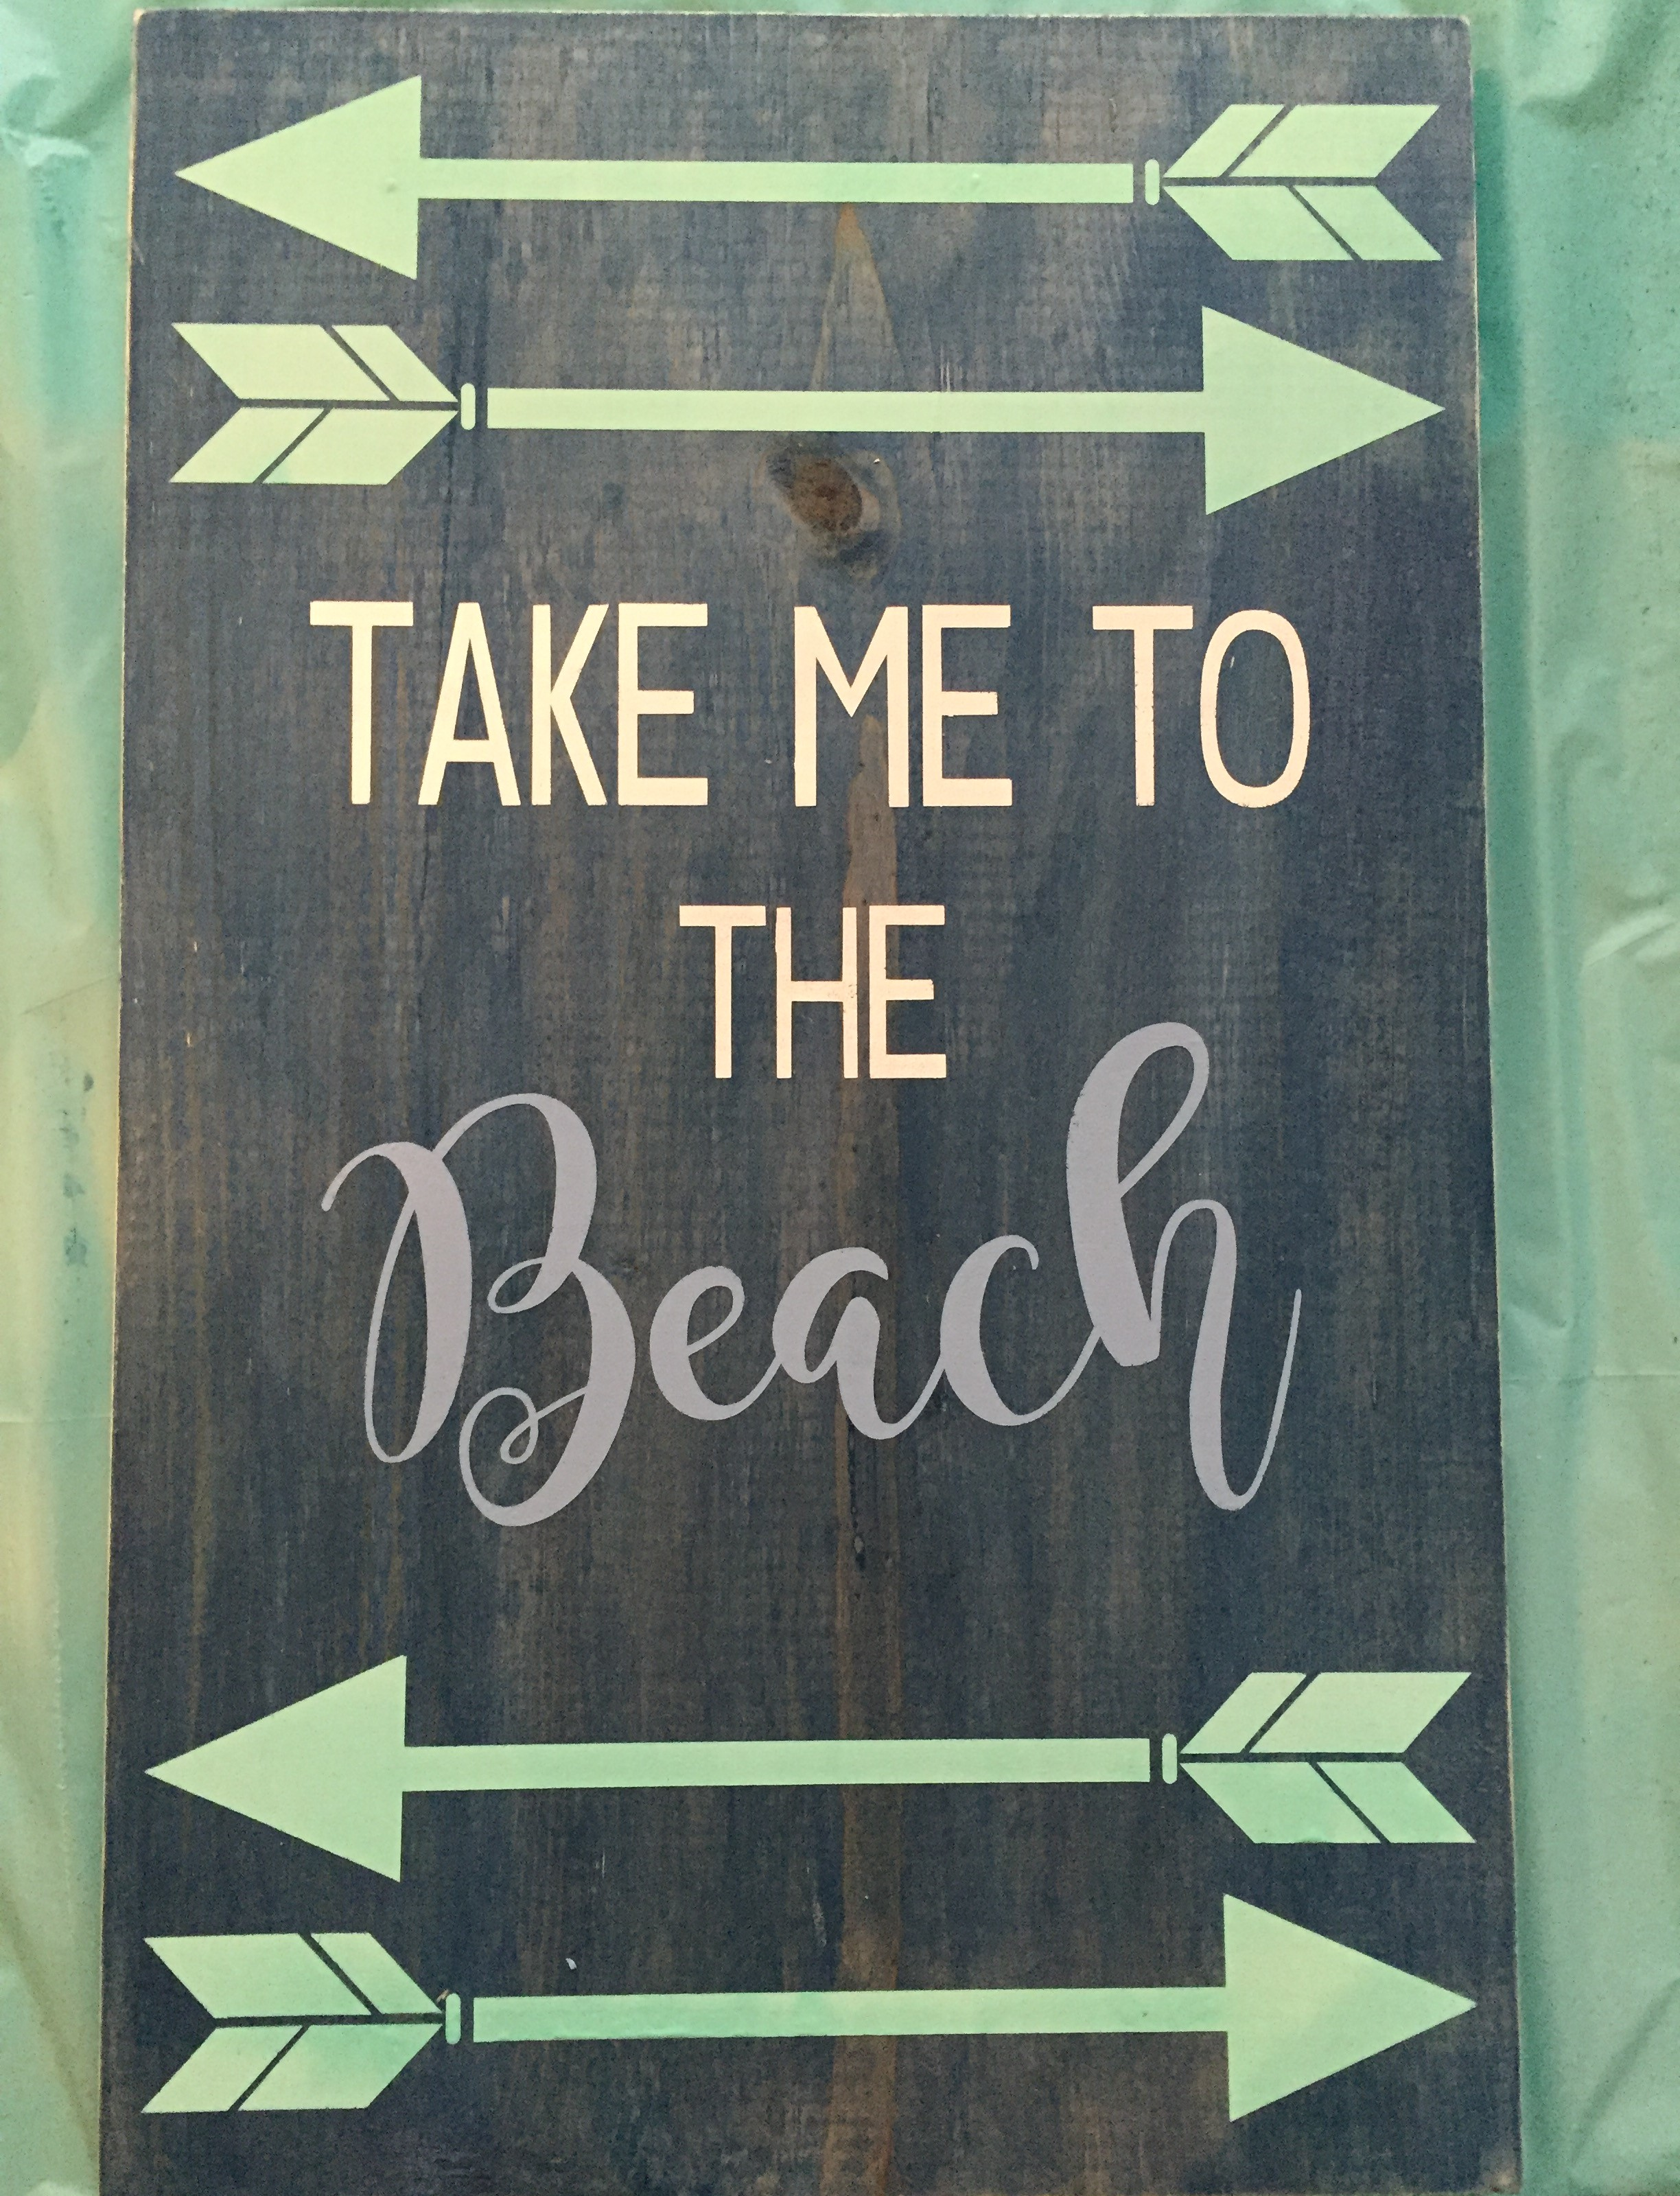 Sondra Hibler - Take Me To the Beach (2).JPG